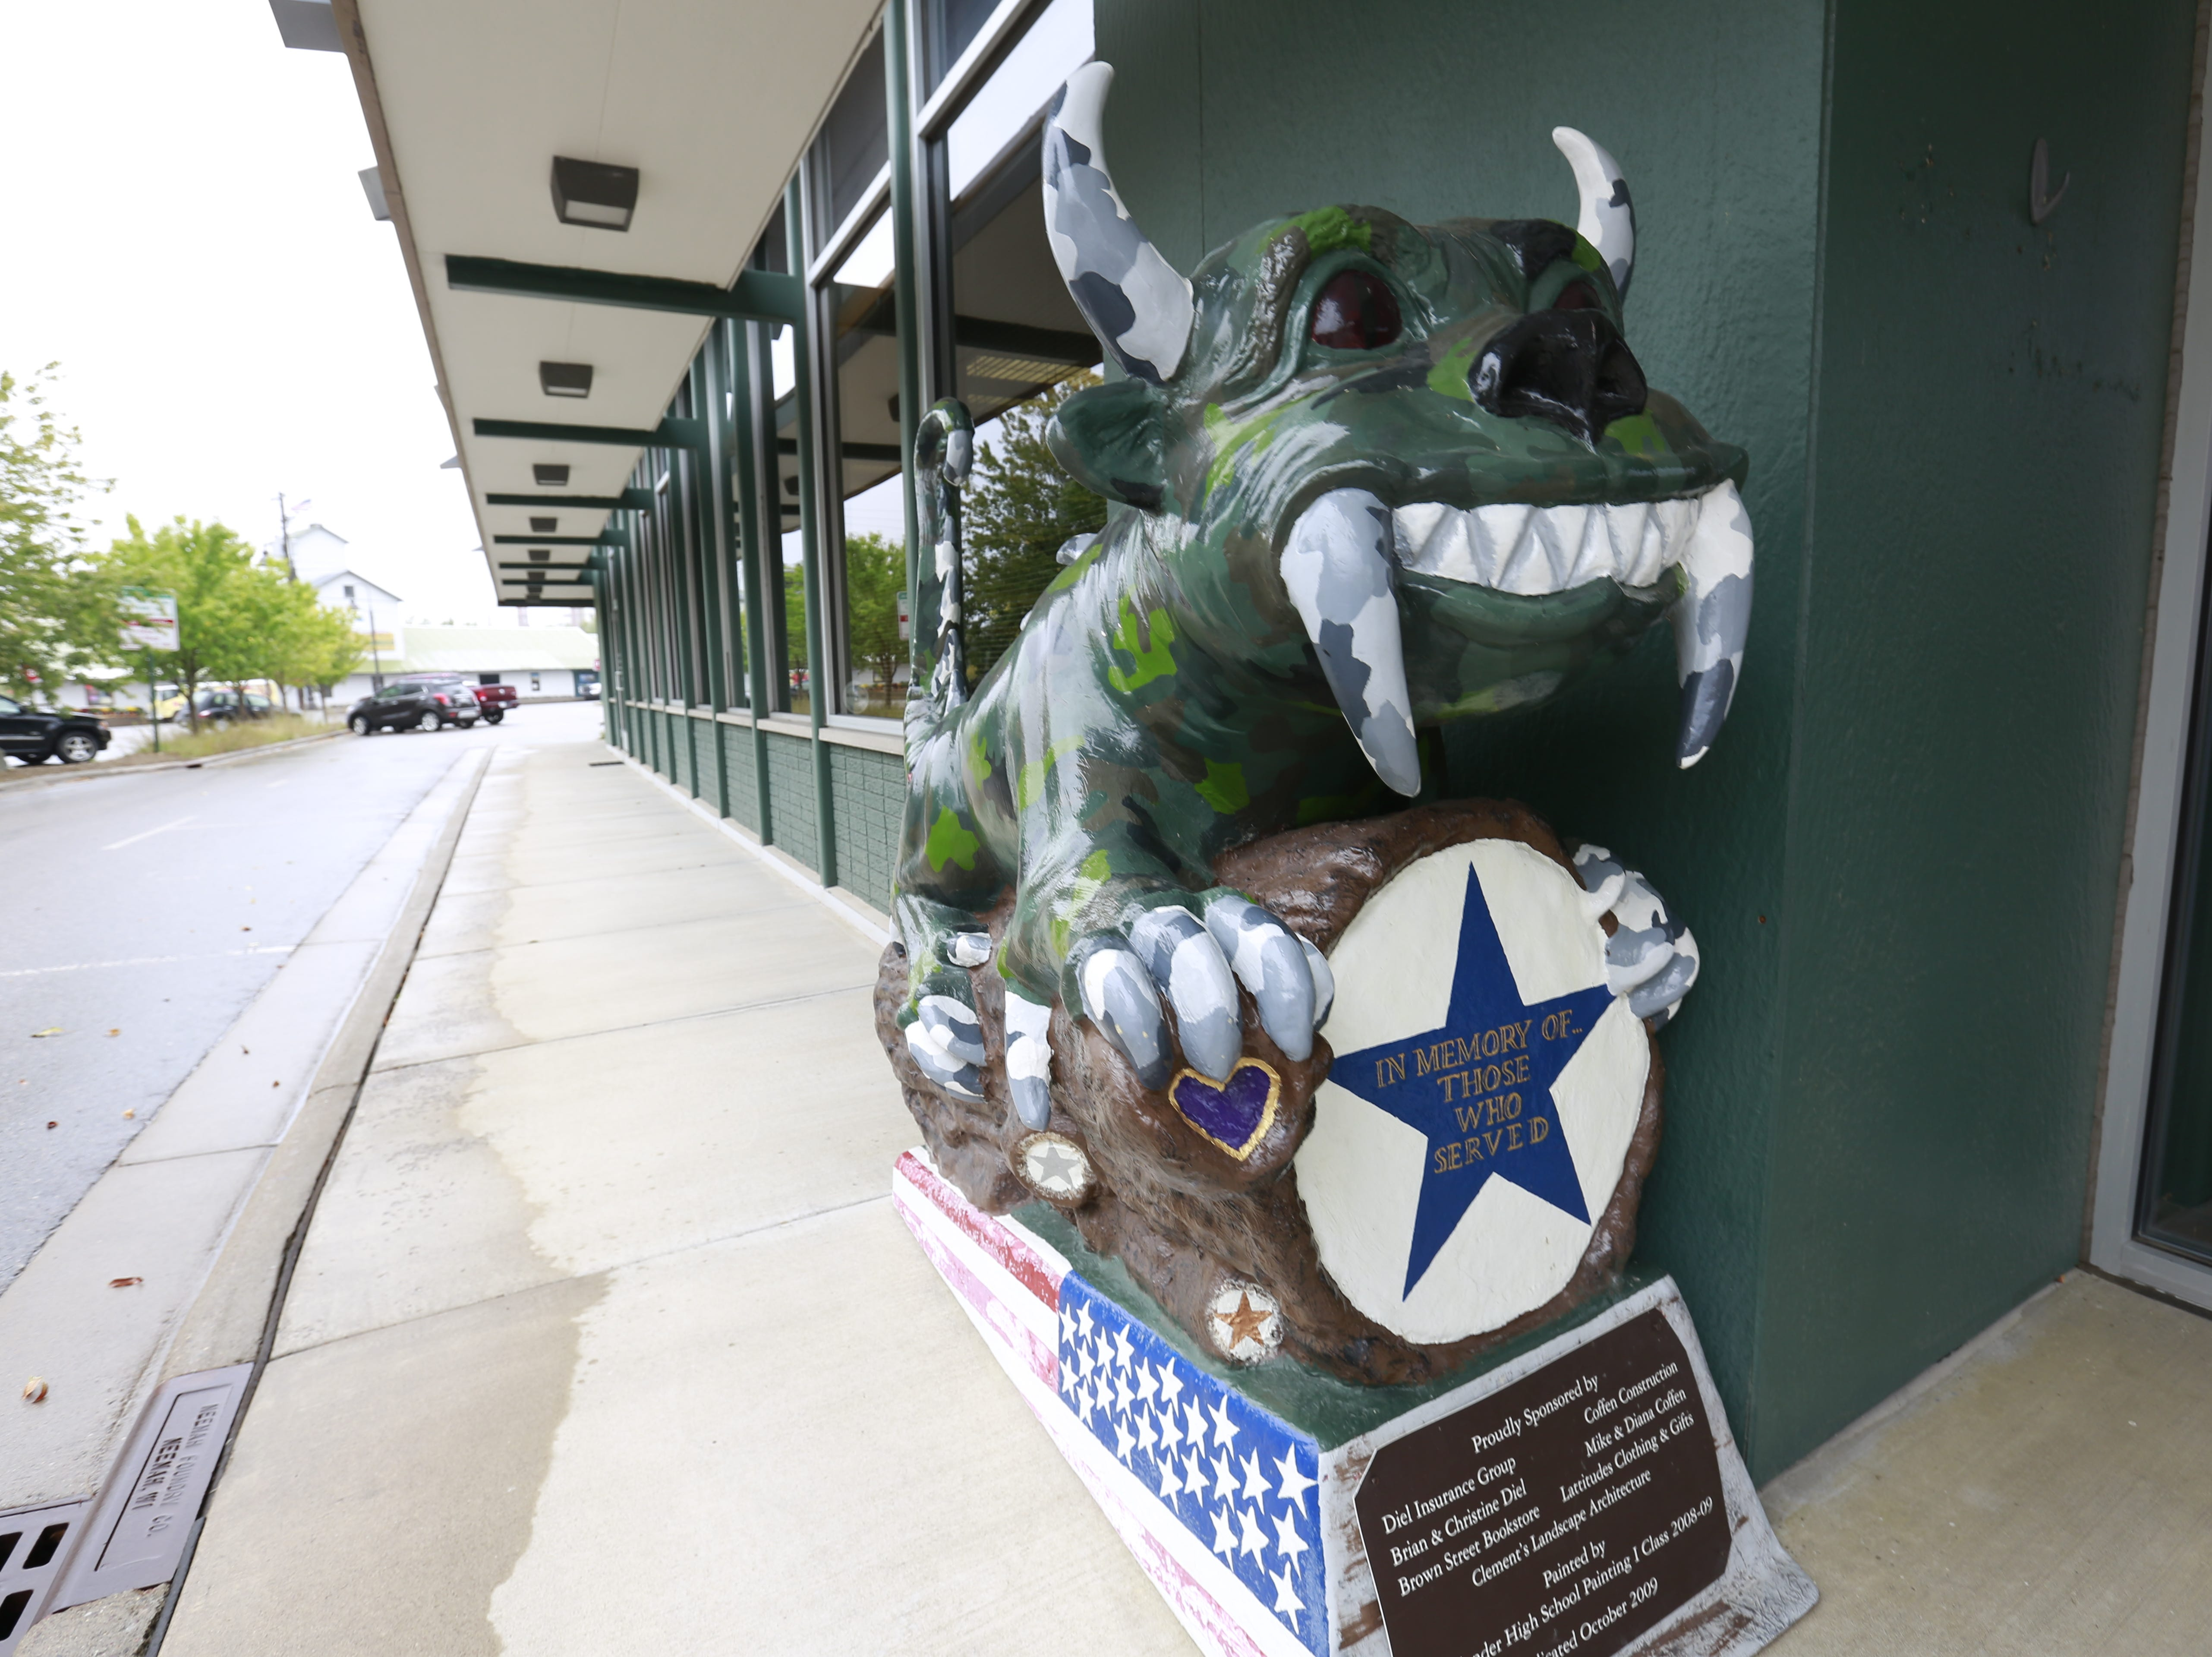 A Hodag sculpture sits Tuesday, Sept. 25, 2018, at Diel Insurance Group in Rhinelander, Wis.